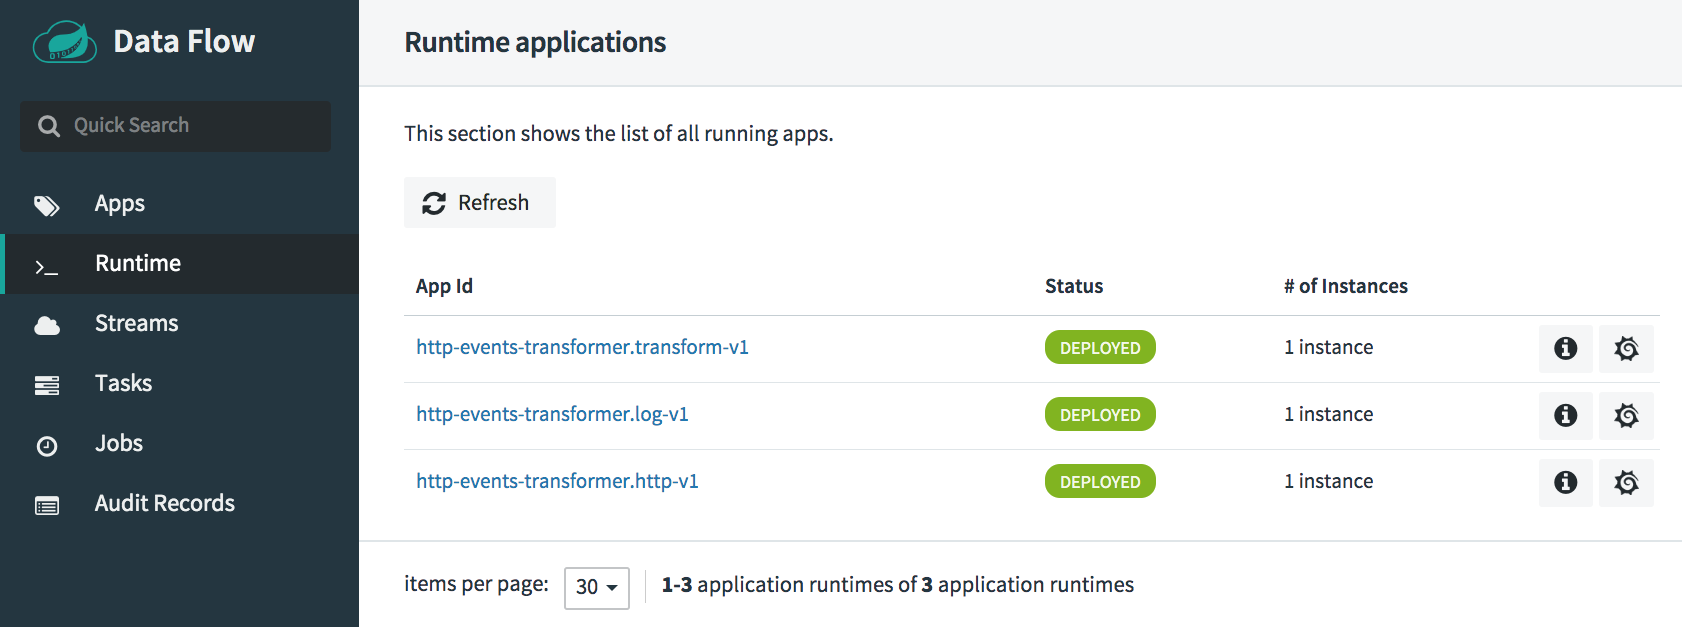 Runtime applications